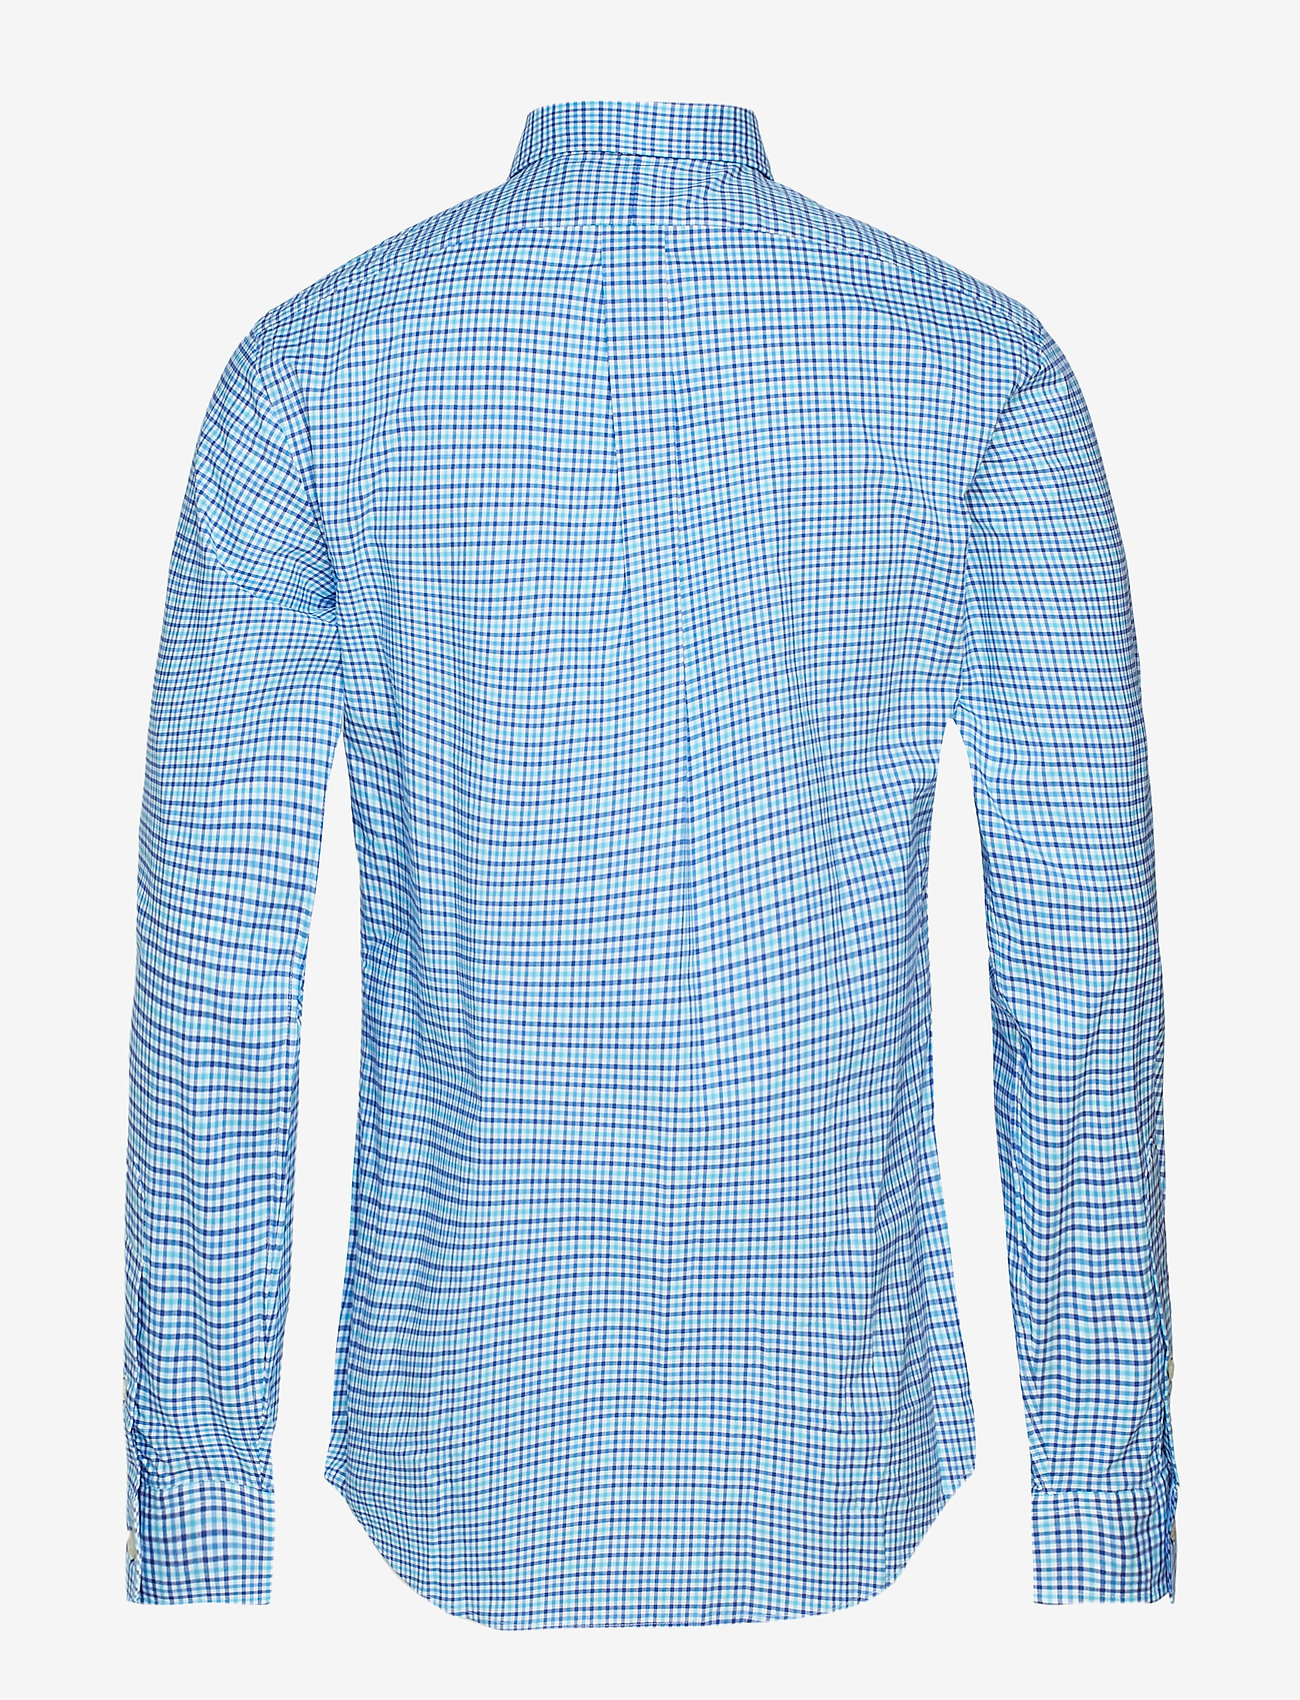 Slim Fit Gingham Cotton Shirt (3016b Cyan/navy) (657.25 kr) - Polo Ralph Lauren